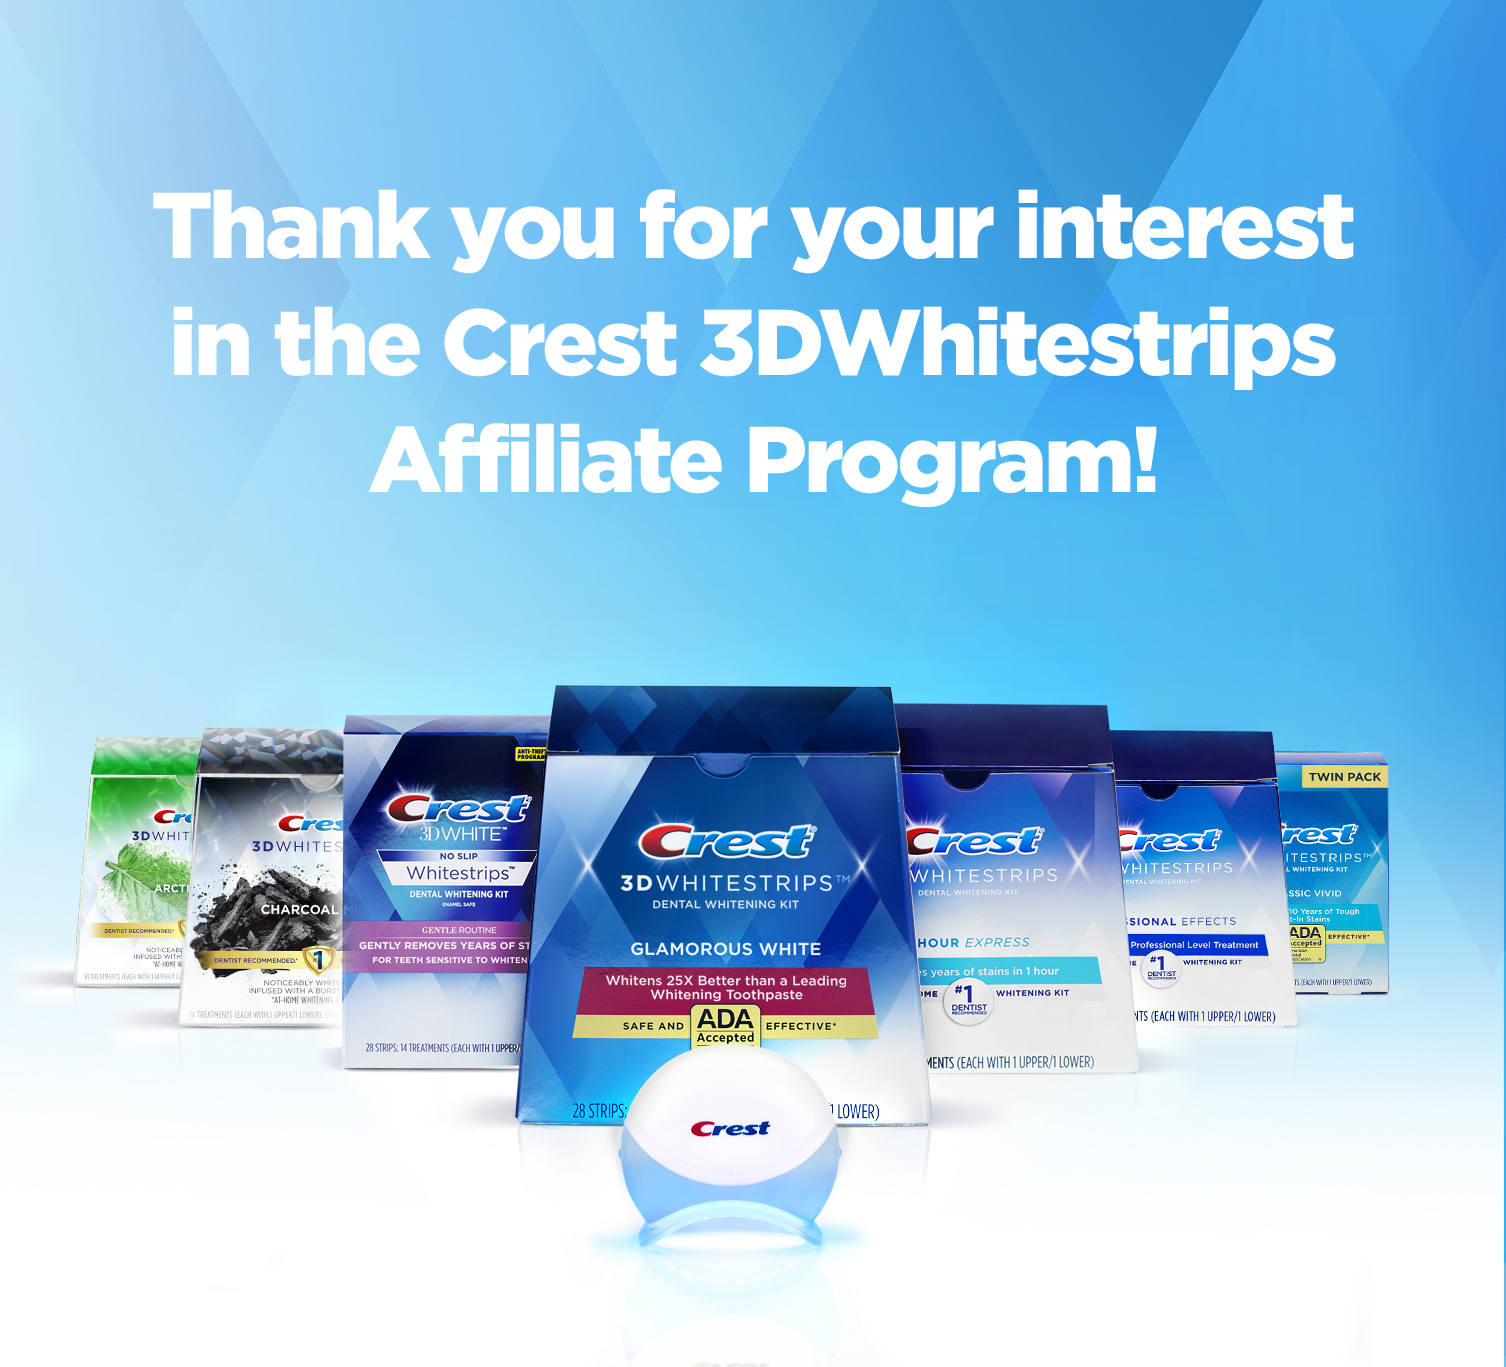 Thank you for your interest in the Crest 3DWhitestrips Affiliate Program!